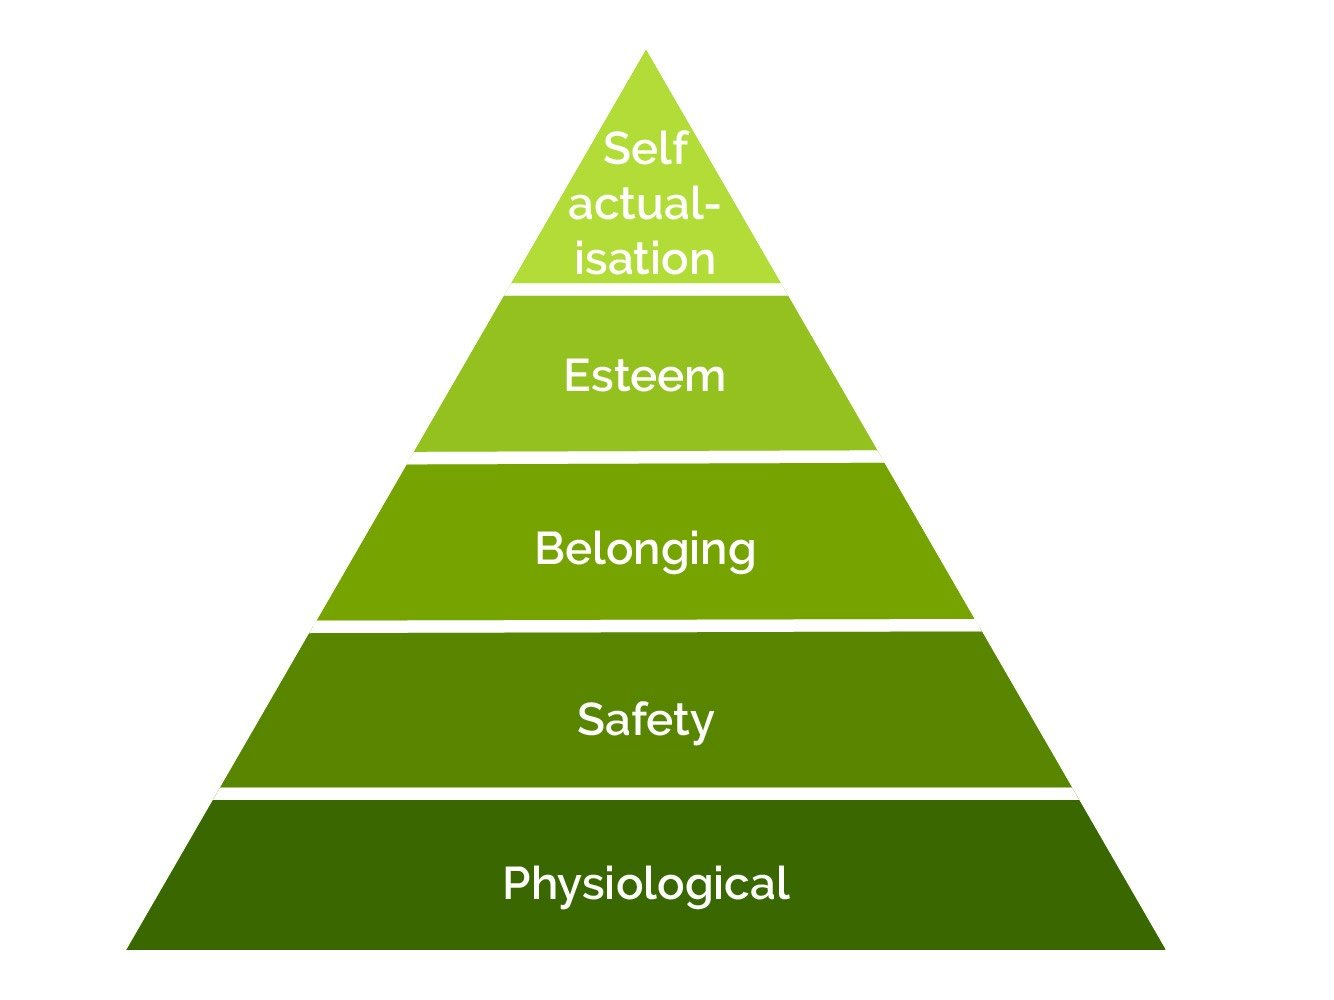 Maslow's Hierarchy of Human Needs